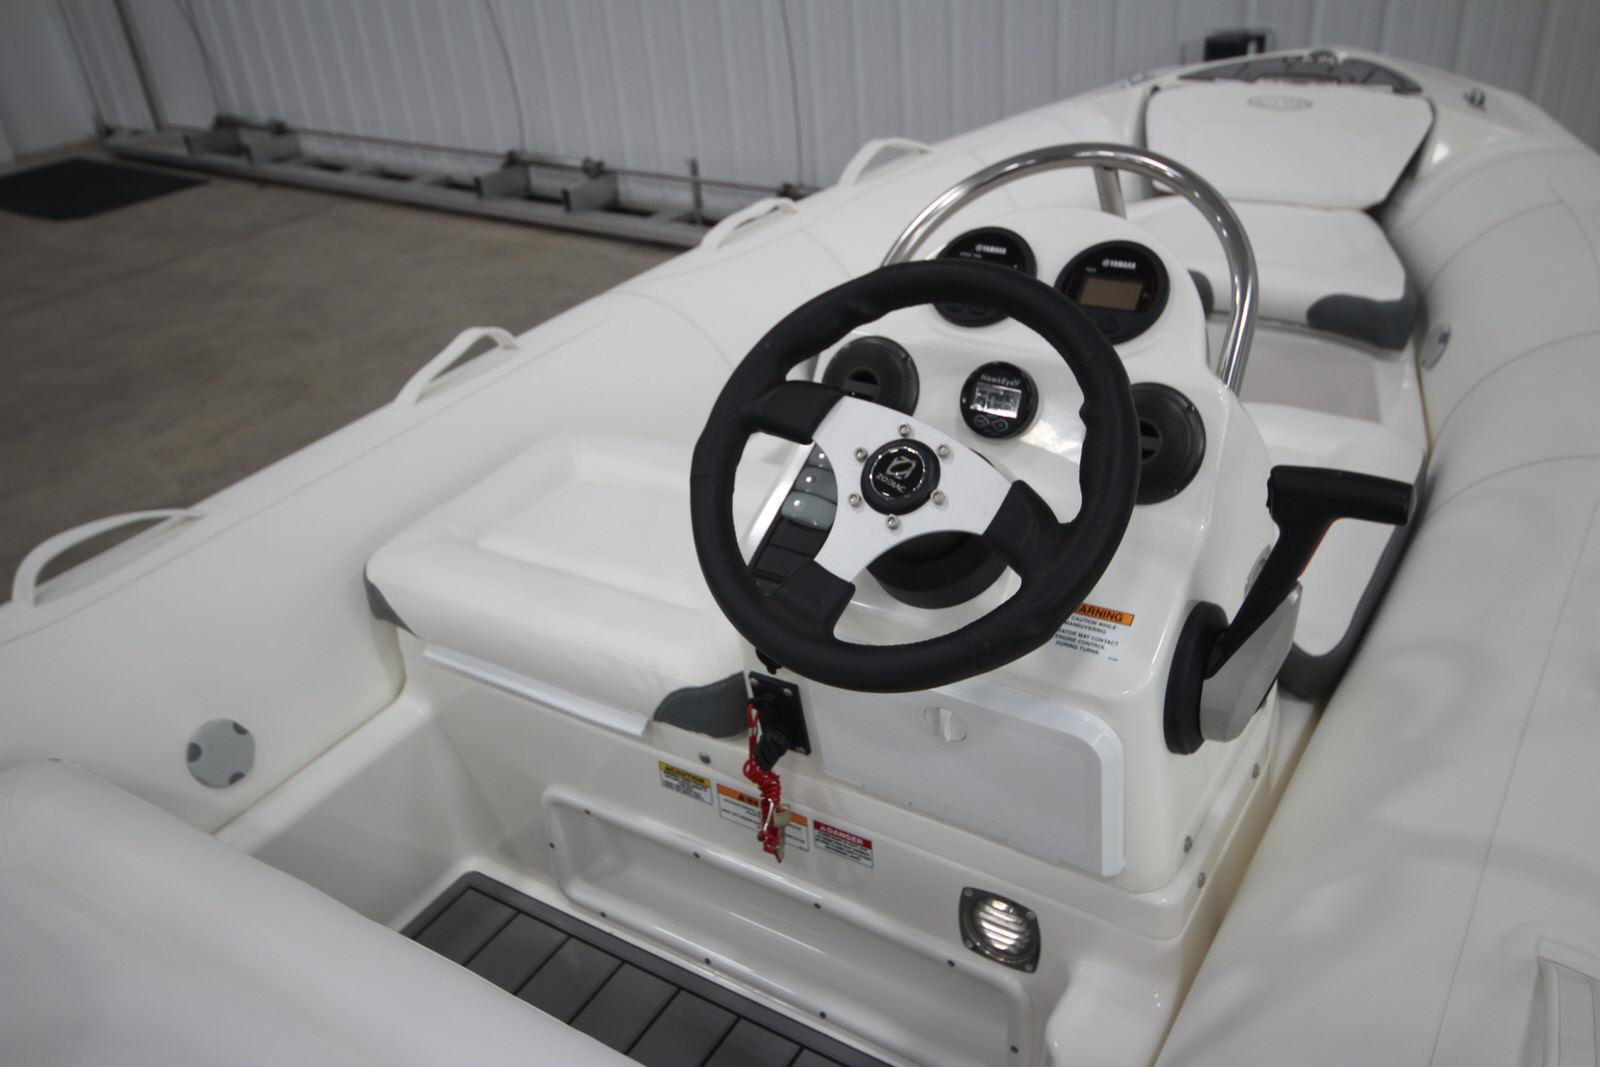 2022 Zodiac Yachtline 440 Deluxe NEO GL Edition 60hp On Order, Image 15